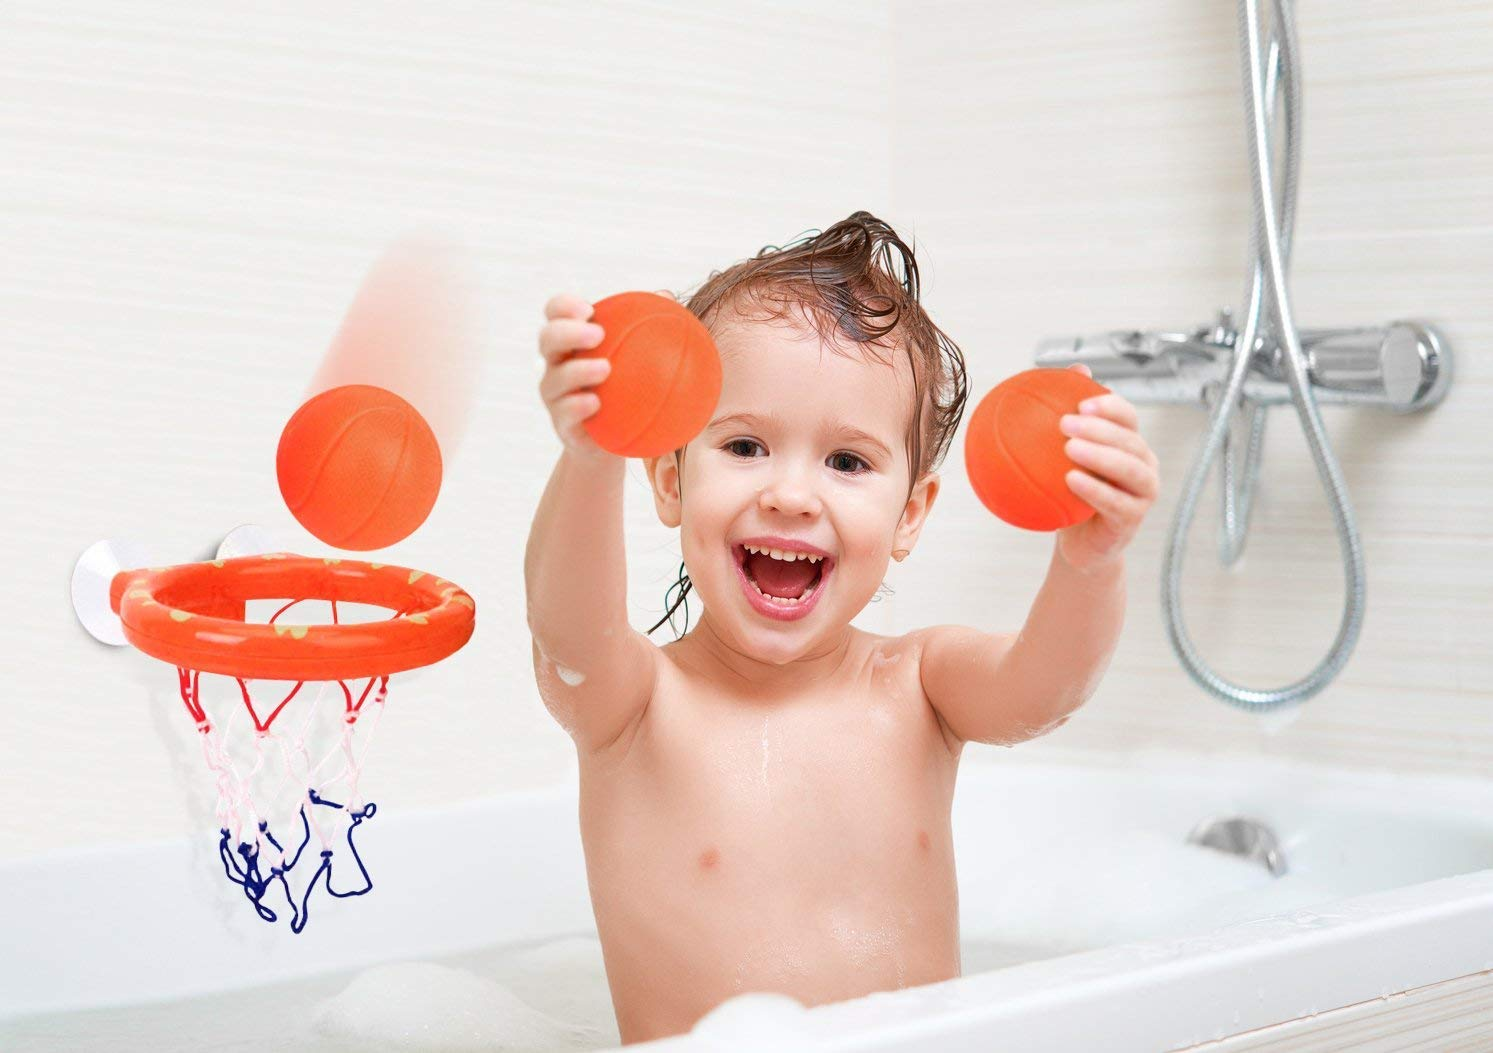 Areedy Kids Bath Toy Basketball Hoop /& Balls Playset for Boys Girls Bathtub Shooting Basket Game Toddlers Gift Set Suctions Cups That Stick to Smooth Place